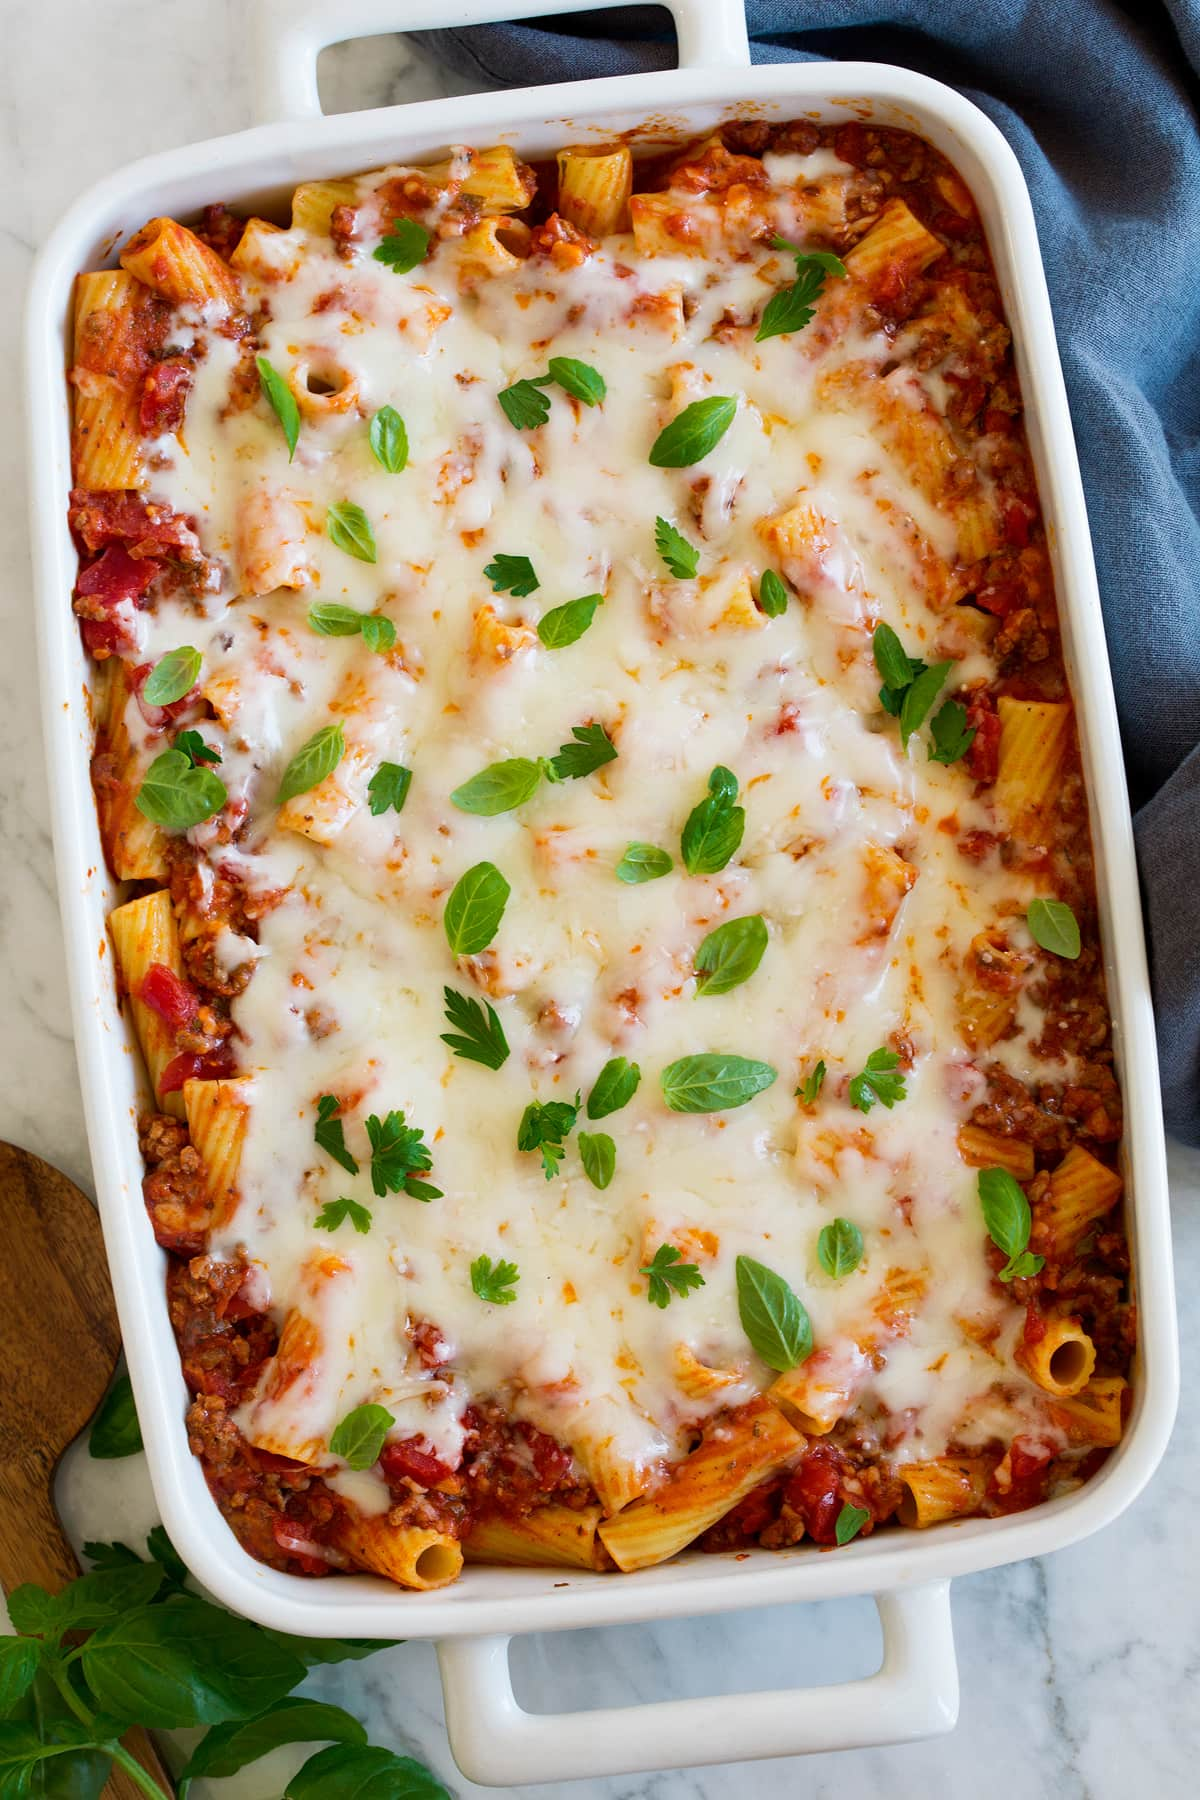 Baked rigatoni shown in a white rectangular ceramic baking dish from above.